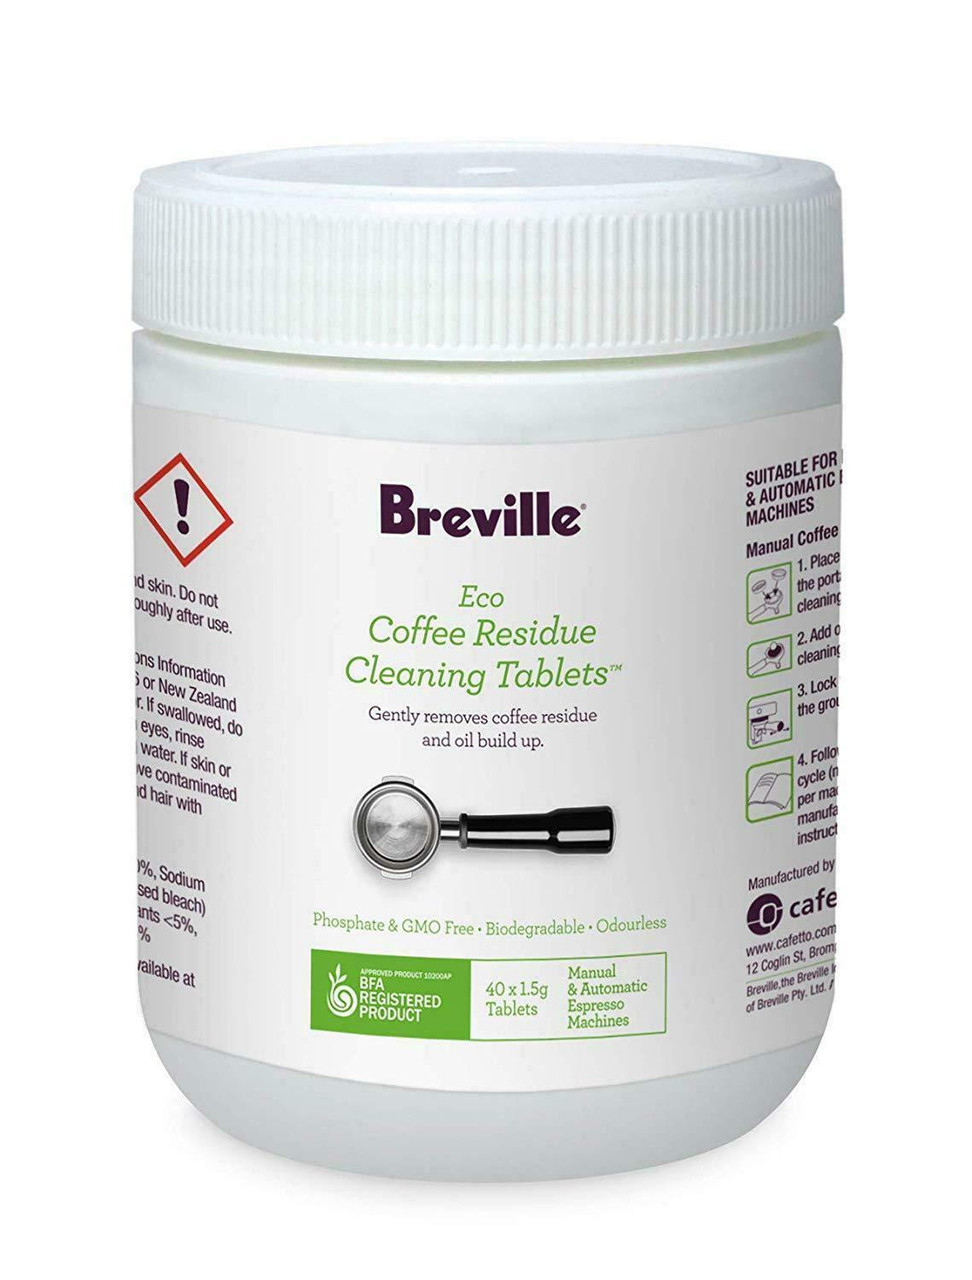 Breville BES013CLR Eco Coffee Residue Cleaner 40 Pack for Espresso Machines